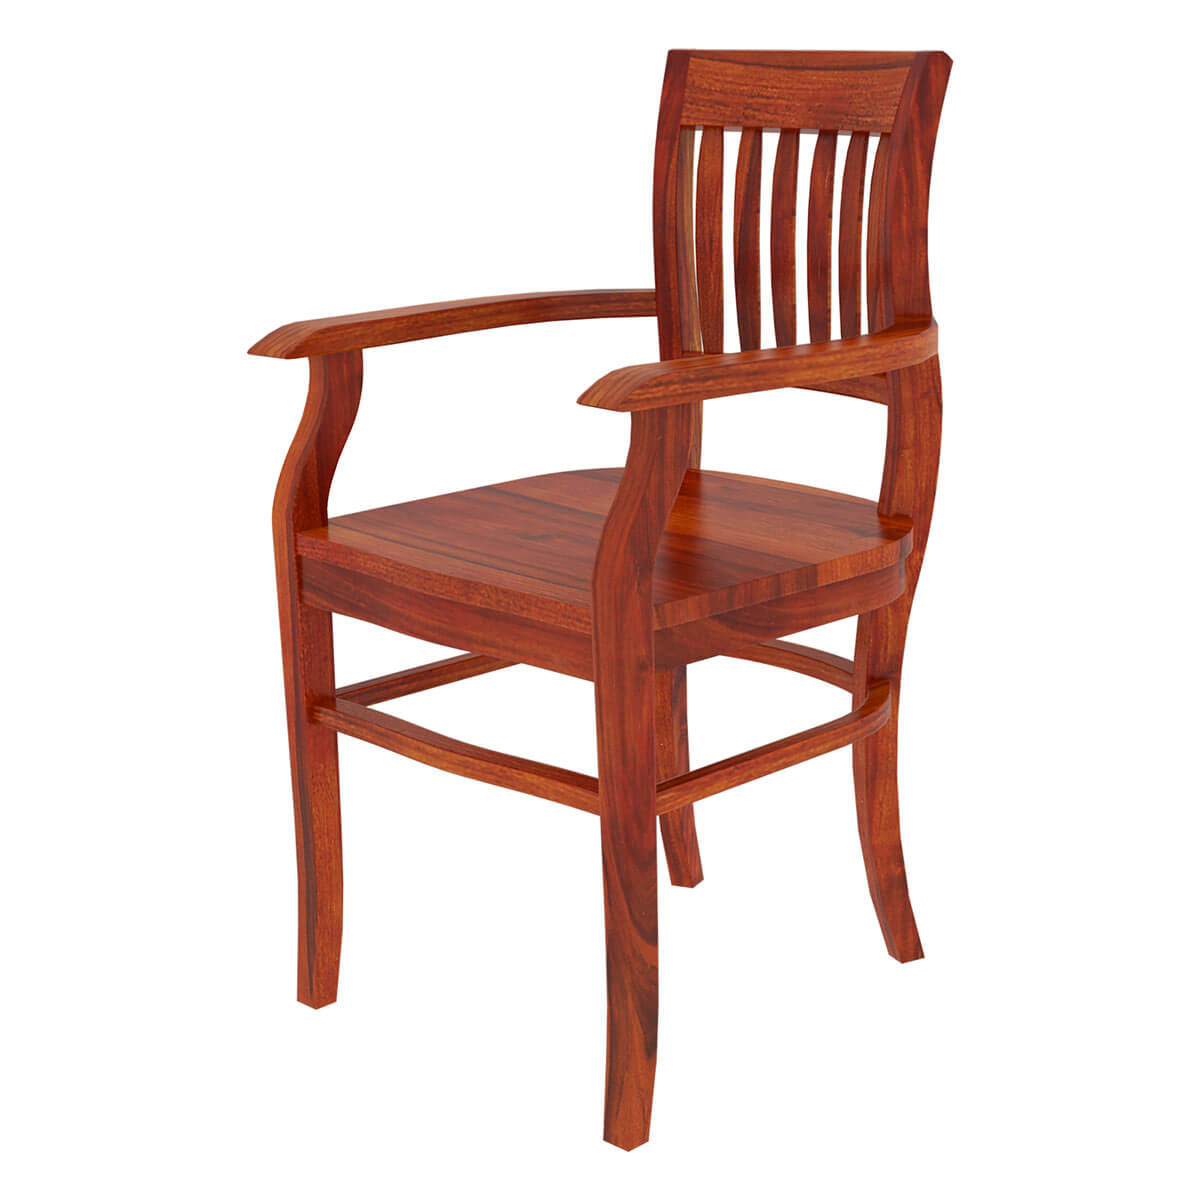 W150 x d90 x h75cm (dining table), w45.5 x d63 x h77cm (dining chair), w98 x d37 x h47cm (bench) delivers from: Siena Rustic Solid Wood Arm Dining Chair